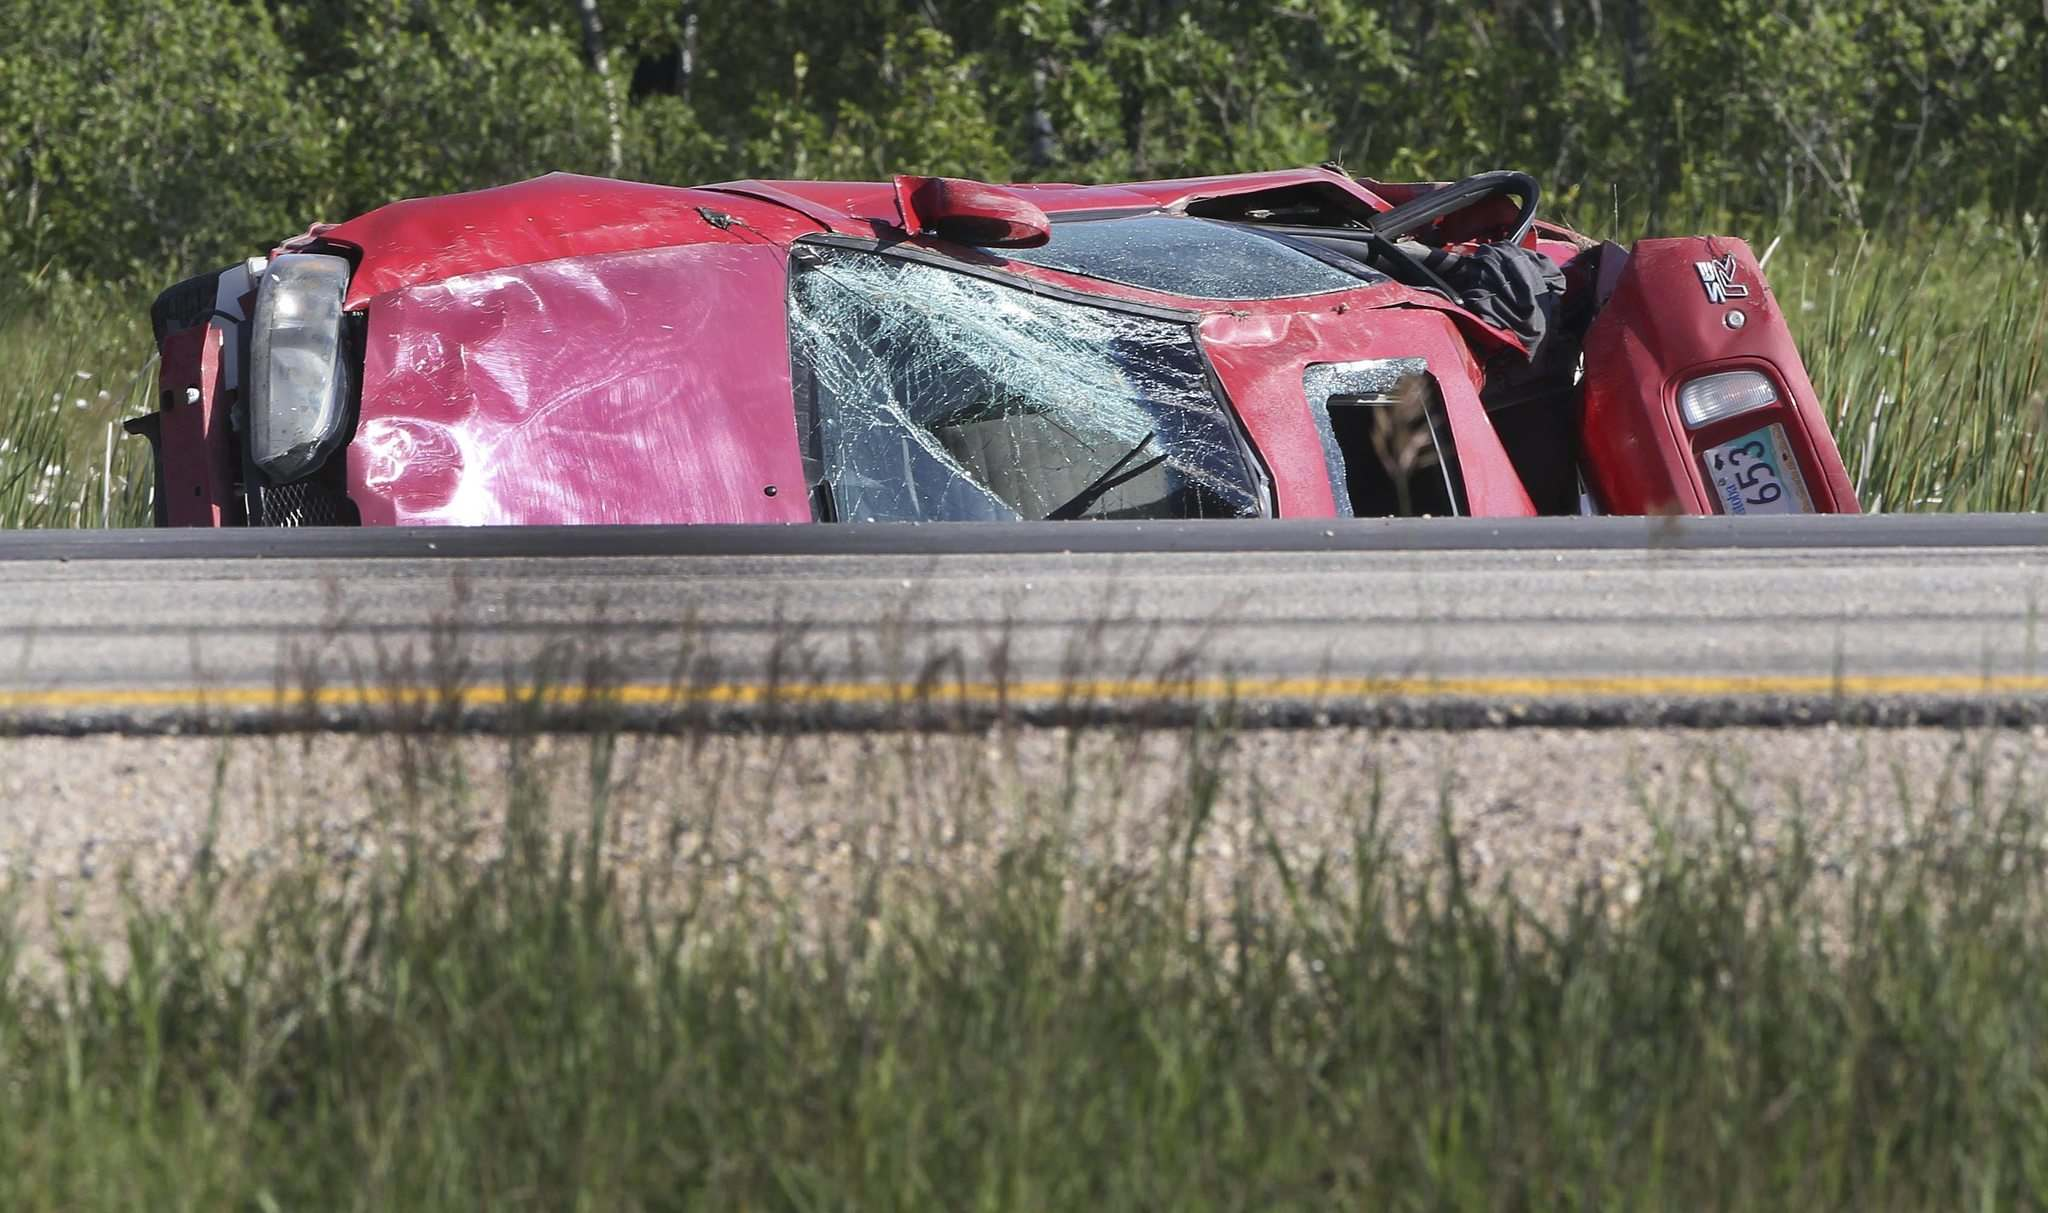 JOE BRYKSA / WINNIPEG FREE PRESS FILESNot wearing seatbelts accounts for 40 per cent of road fatalities in Manitoba, the province&#39;s public insurance company reports.</p>